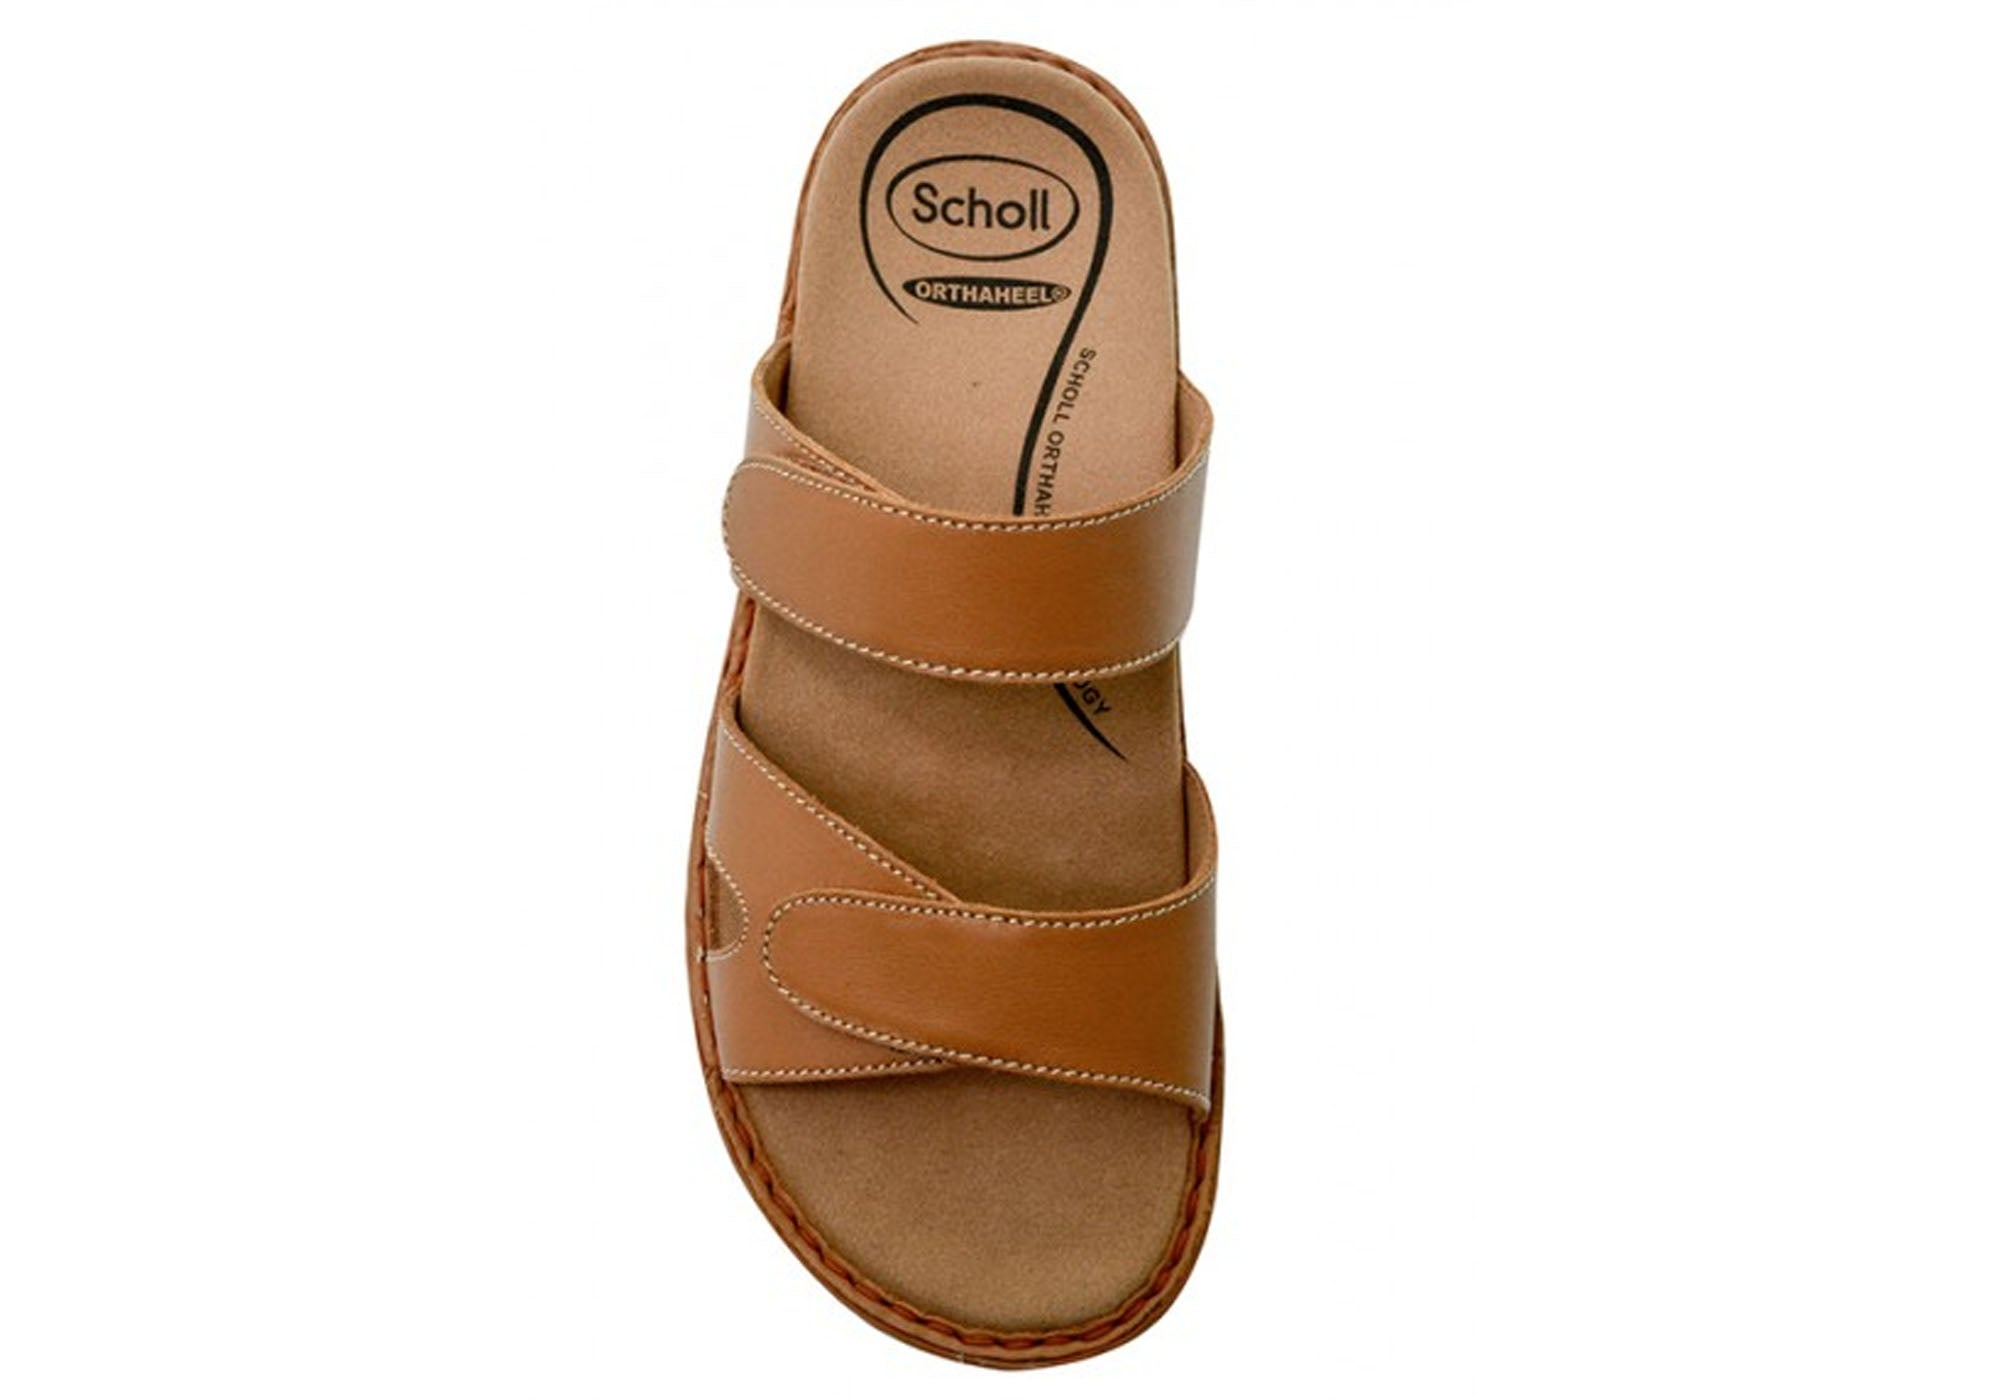 83c31723a690 Tan · Black · Black · Tan · Scholl Orthaheel Indulge Womens Comfort  Supportive Leather Sandals